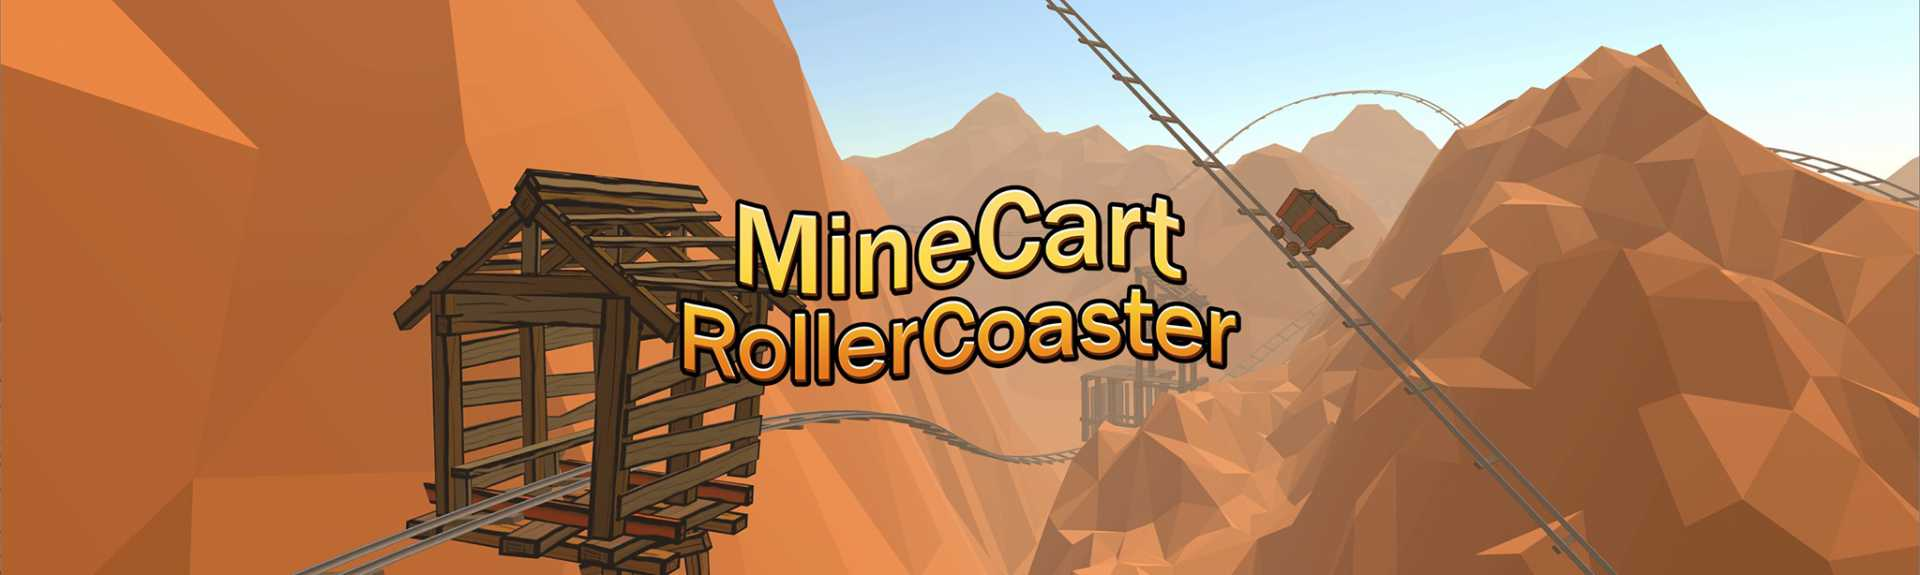 Free Mine Cart Roller Coaster Ride